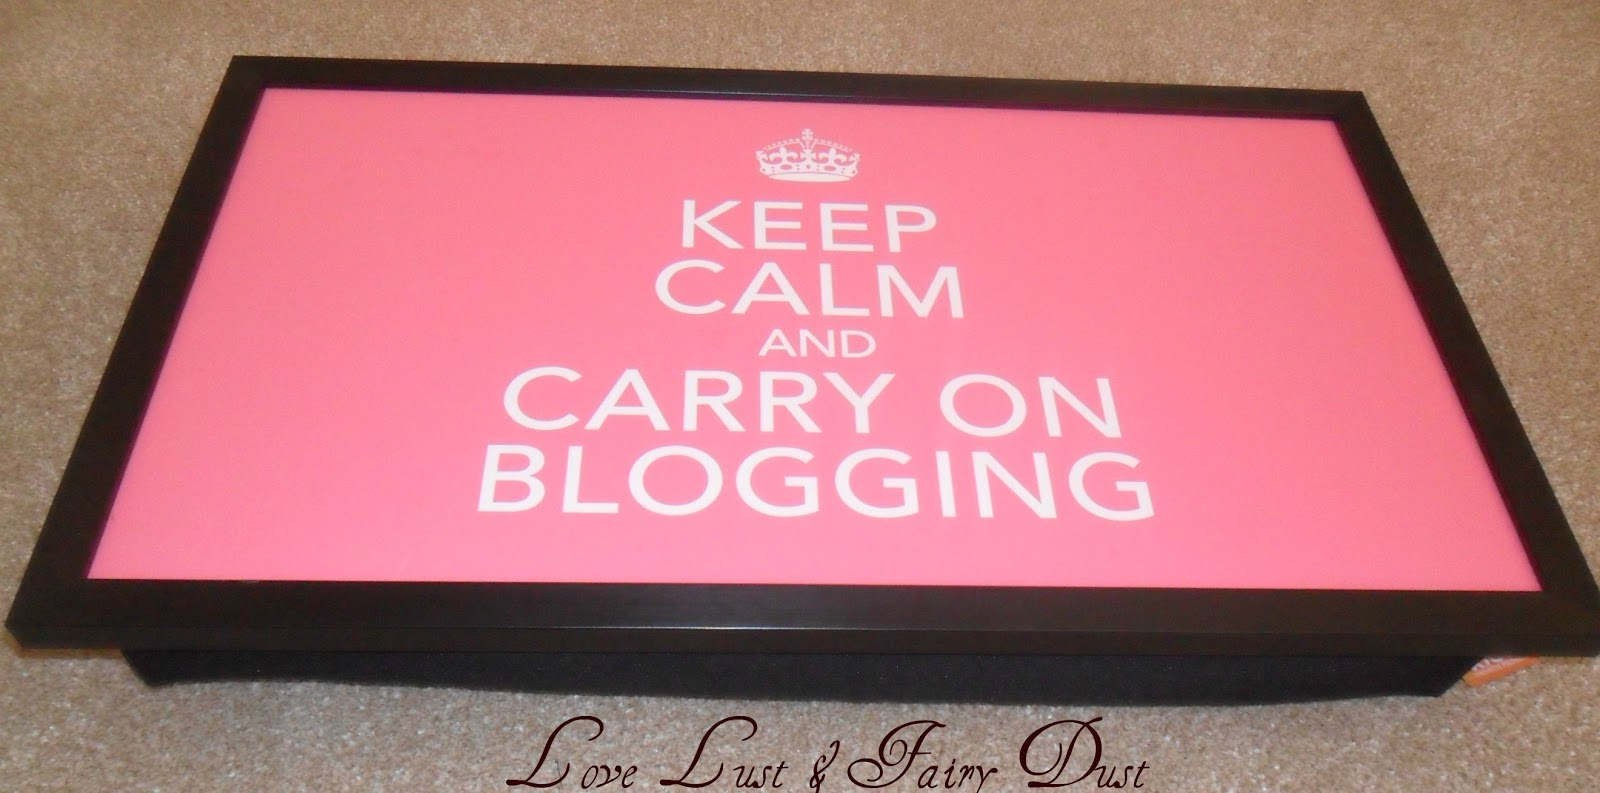 keep calm and carry on blogging laptop tray from Kico